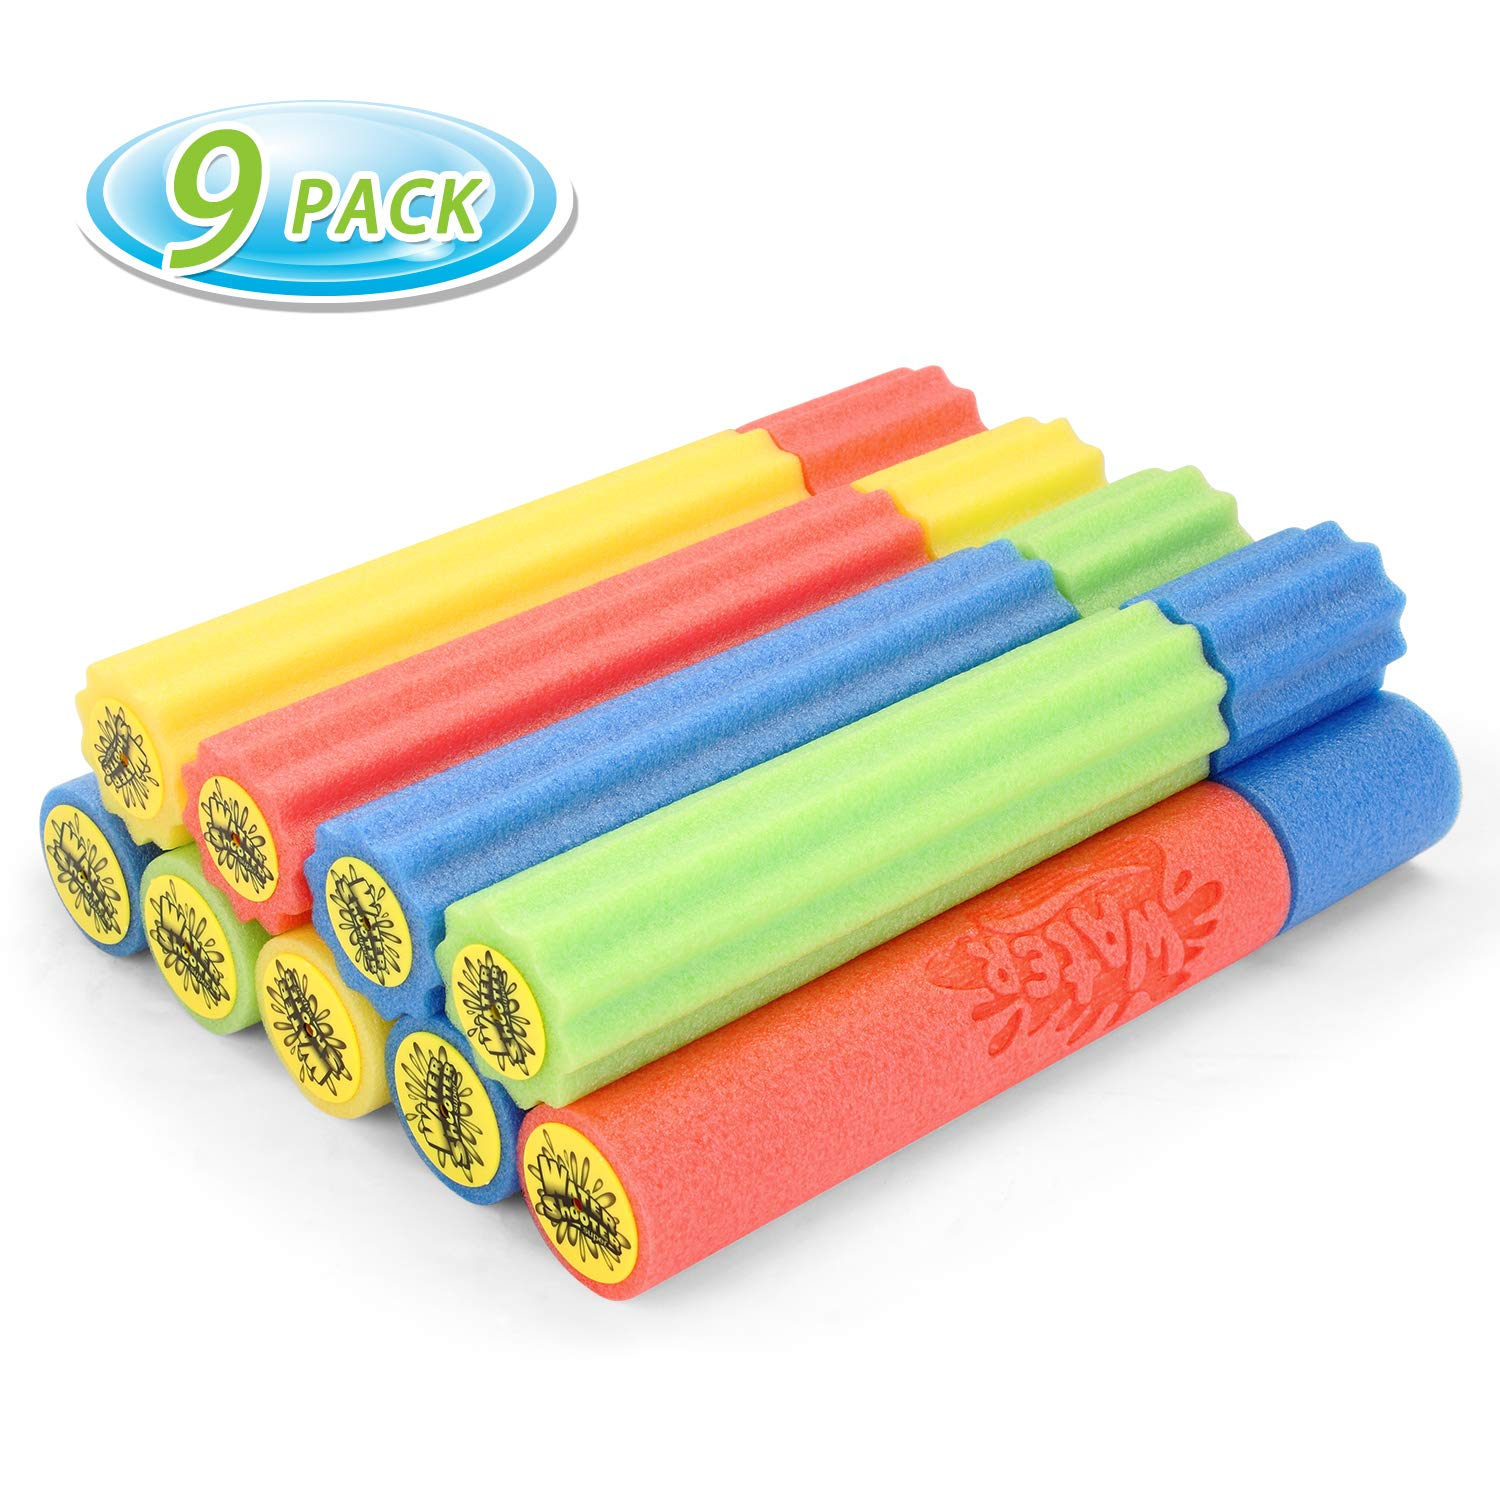 Fun-Here Water Shooter 9-Pack Pool Noodles 2 Styles Summer Toys Bulk Water Blaster Foam Squirt Gun Super Lake Soaker Outdoor Set for Kids Teens Adults by Fun-Here